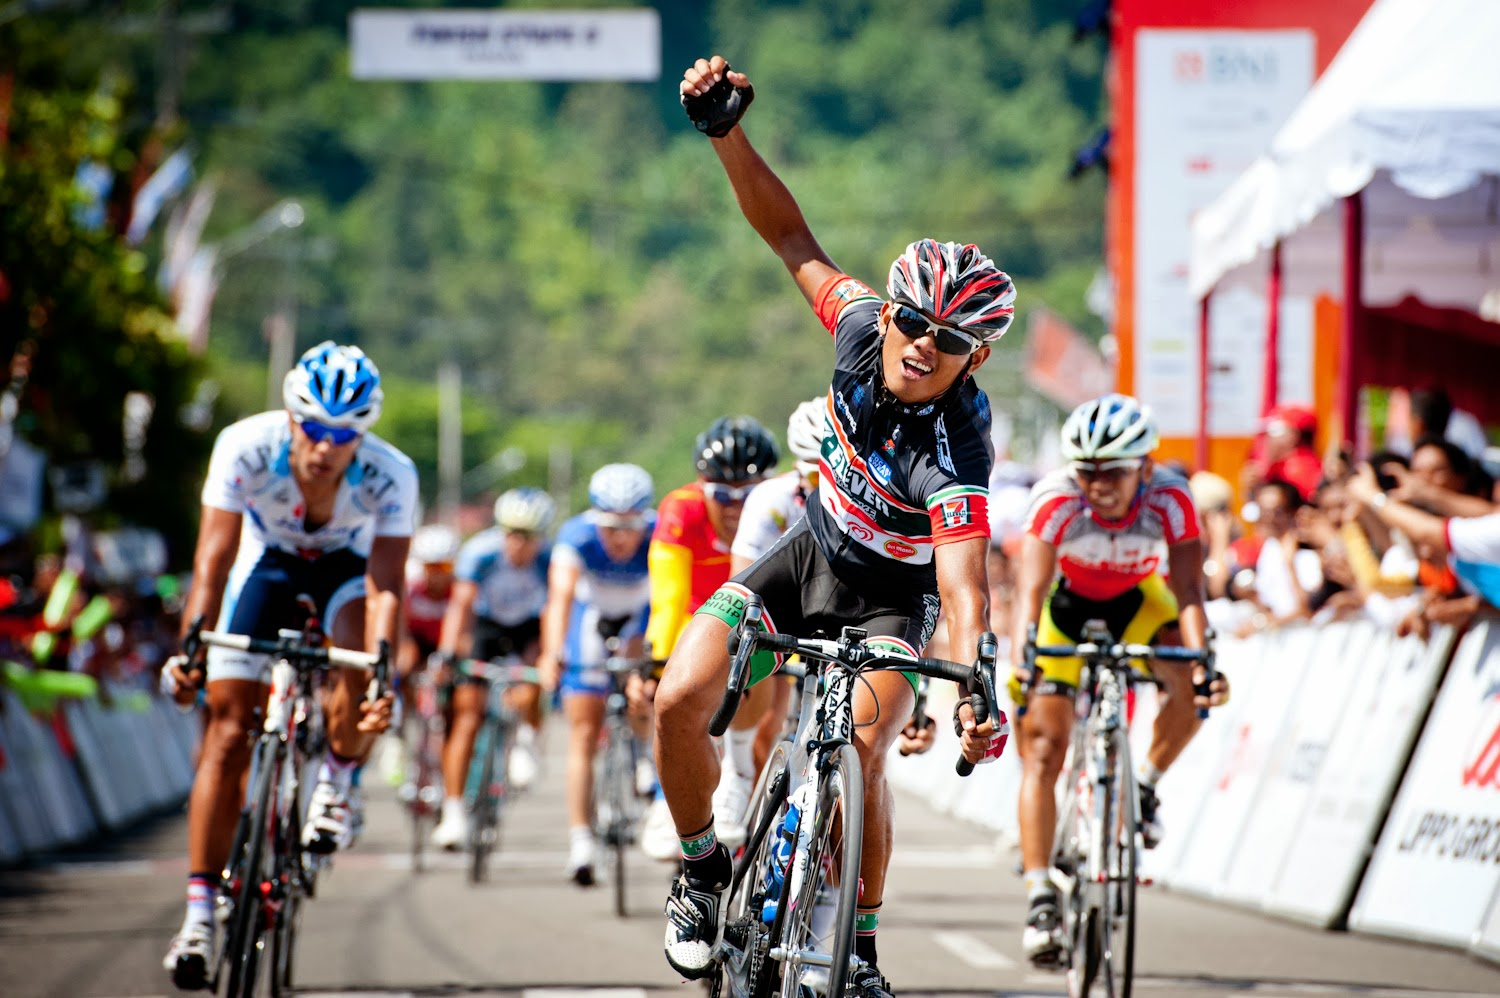 Get Ready for Indonesia's Tour de Singkarak in June